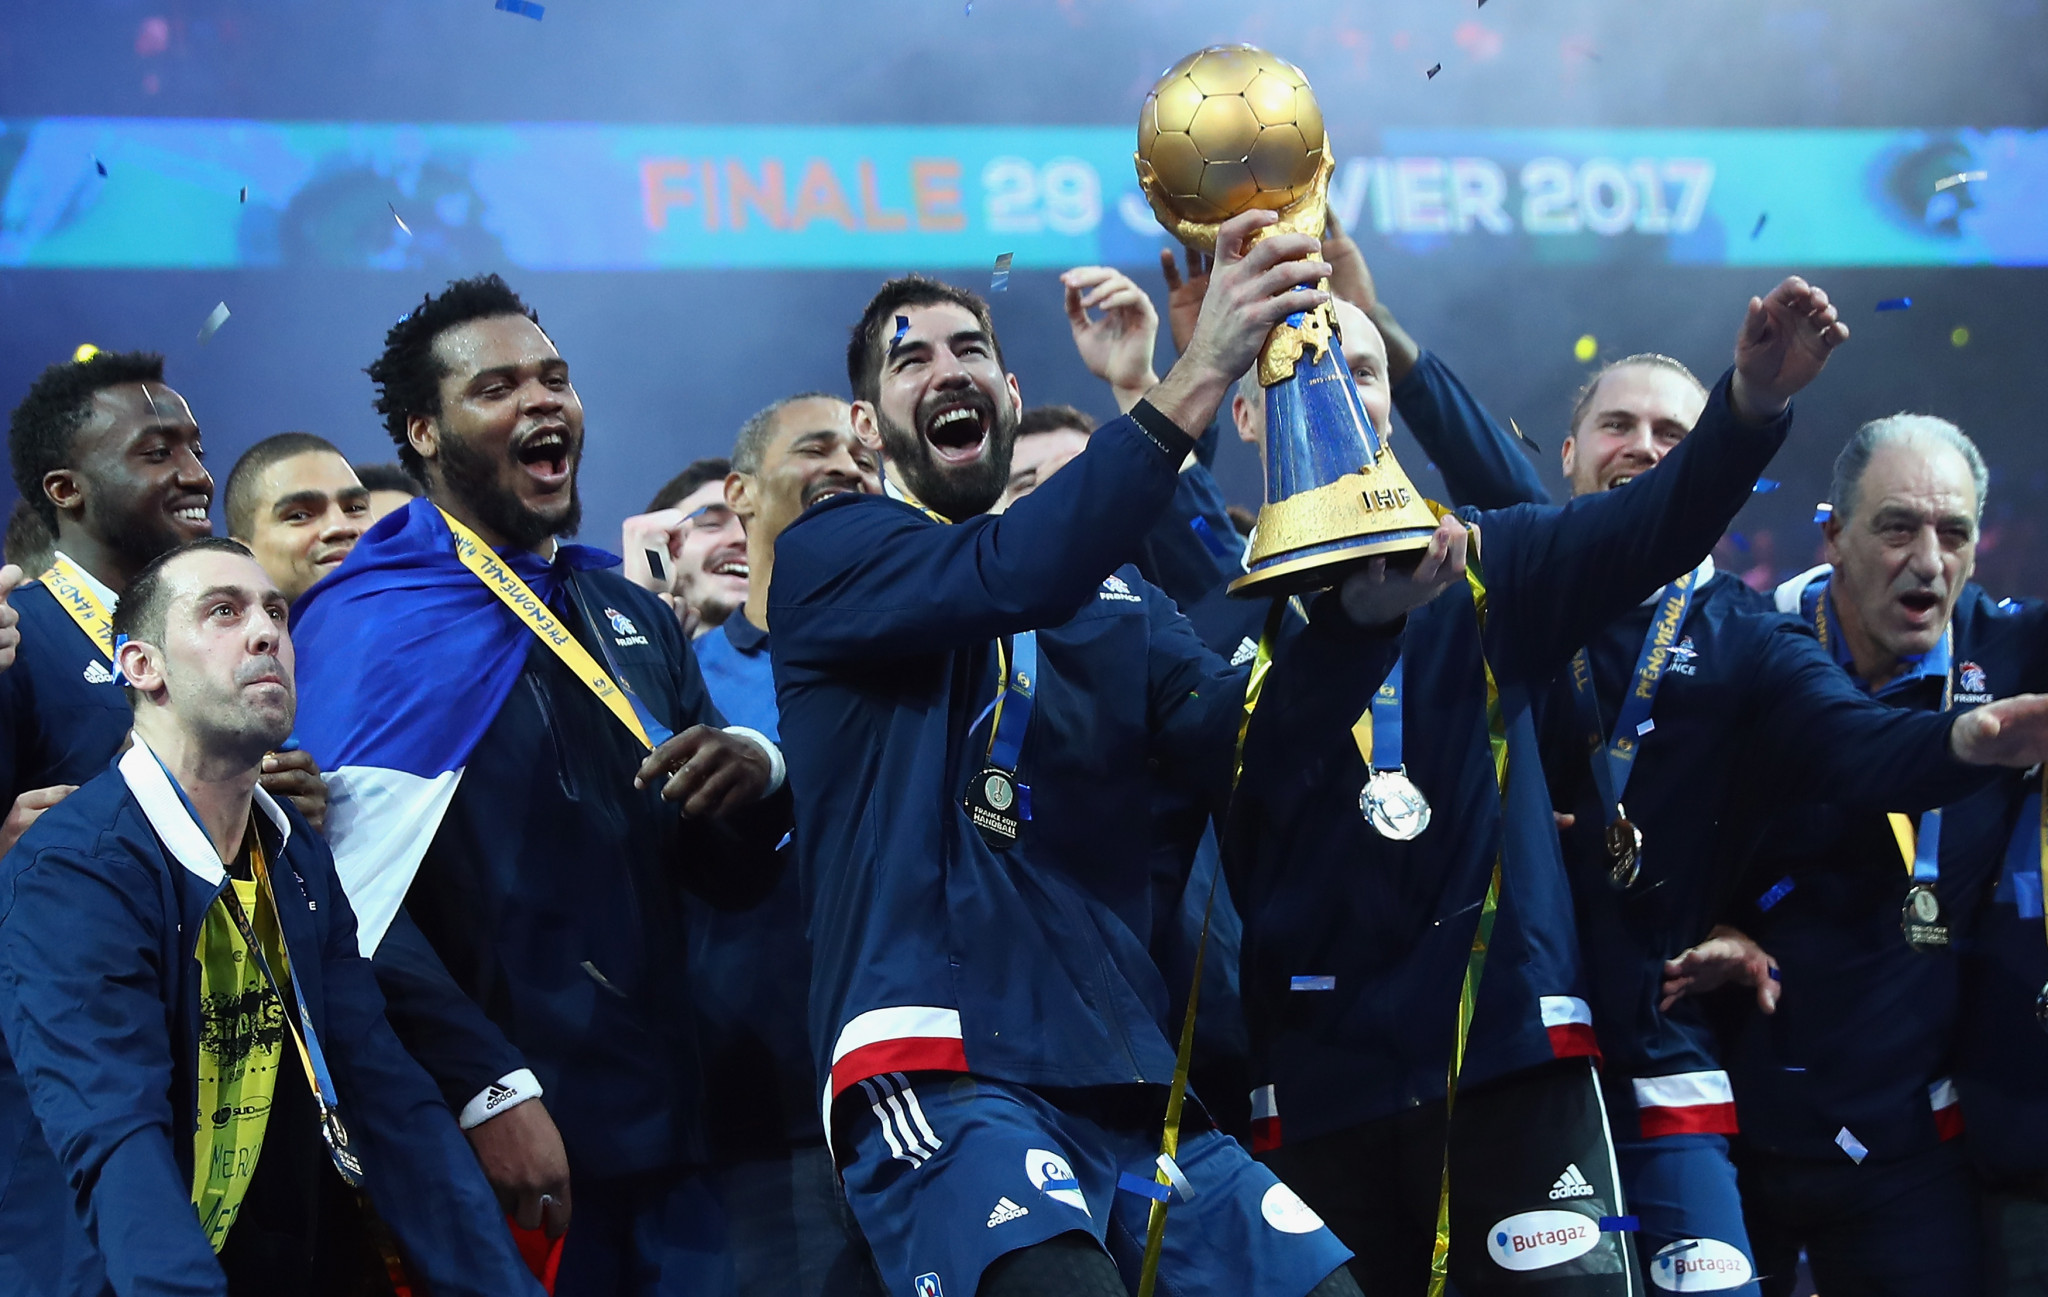 The 2019 Men's Handball World Championships will start tomorrow with France looking to defend their title ©Getty Images